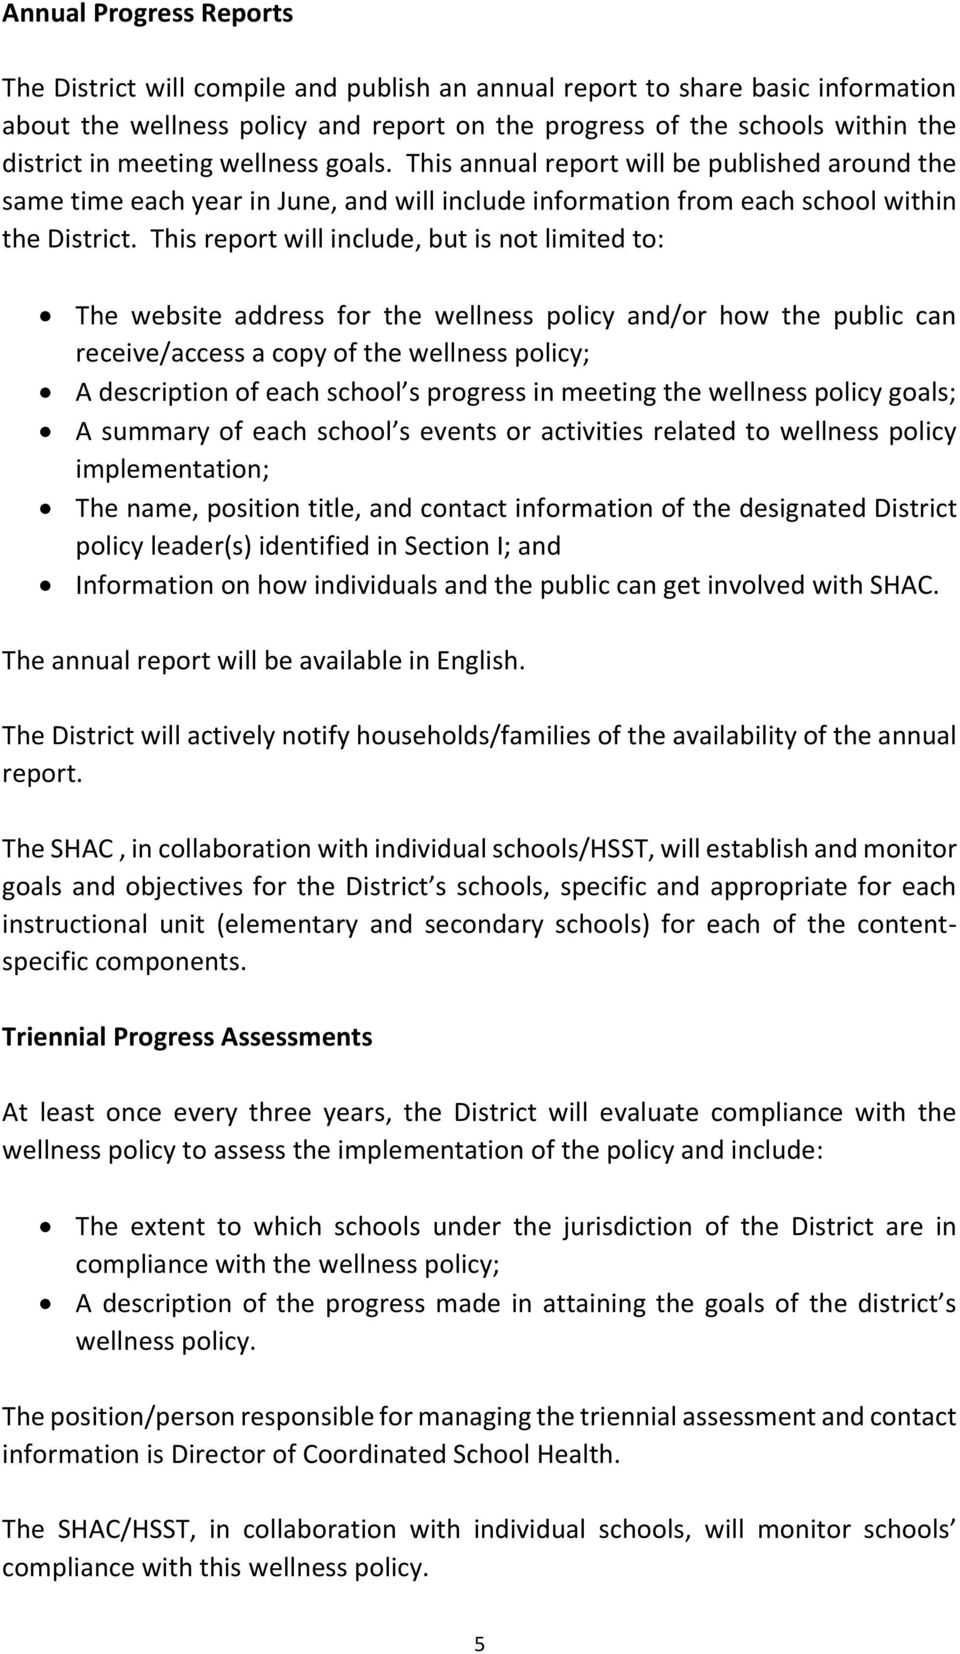 This report will include, but is not limited to: The website address for the wellness policy and/or how the public can receive/access a copy of the wellness policy; A description of each school s